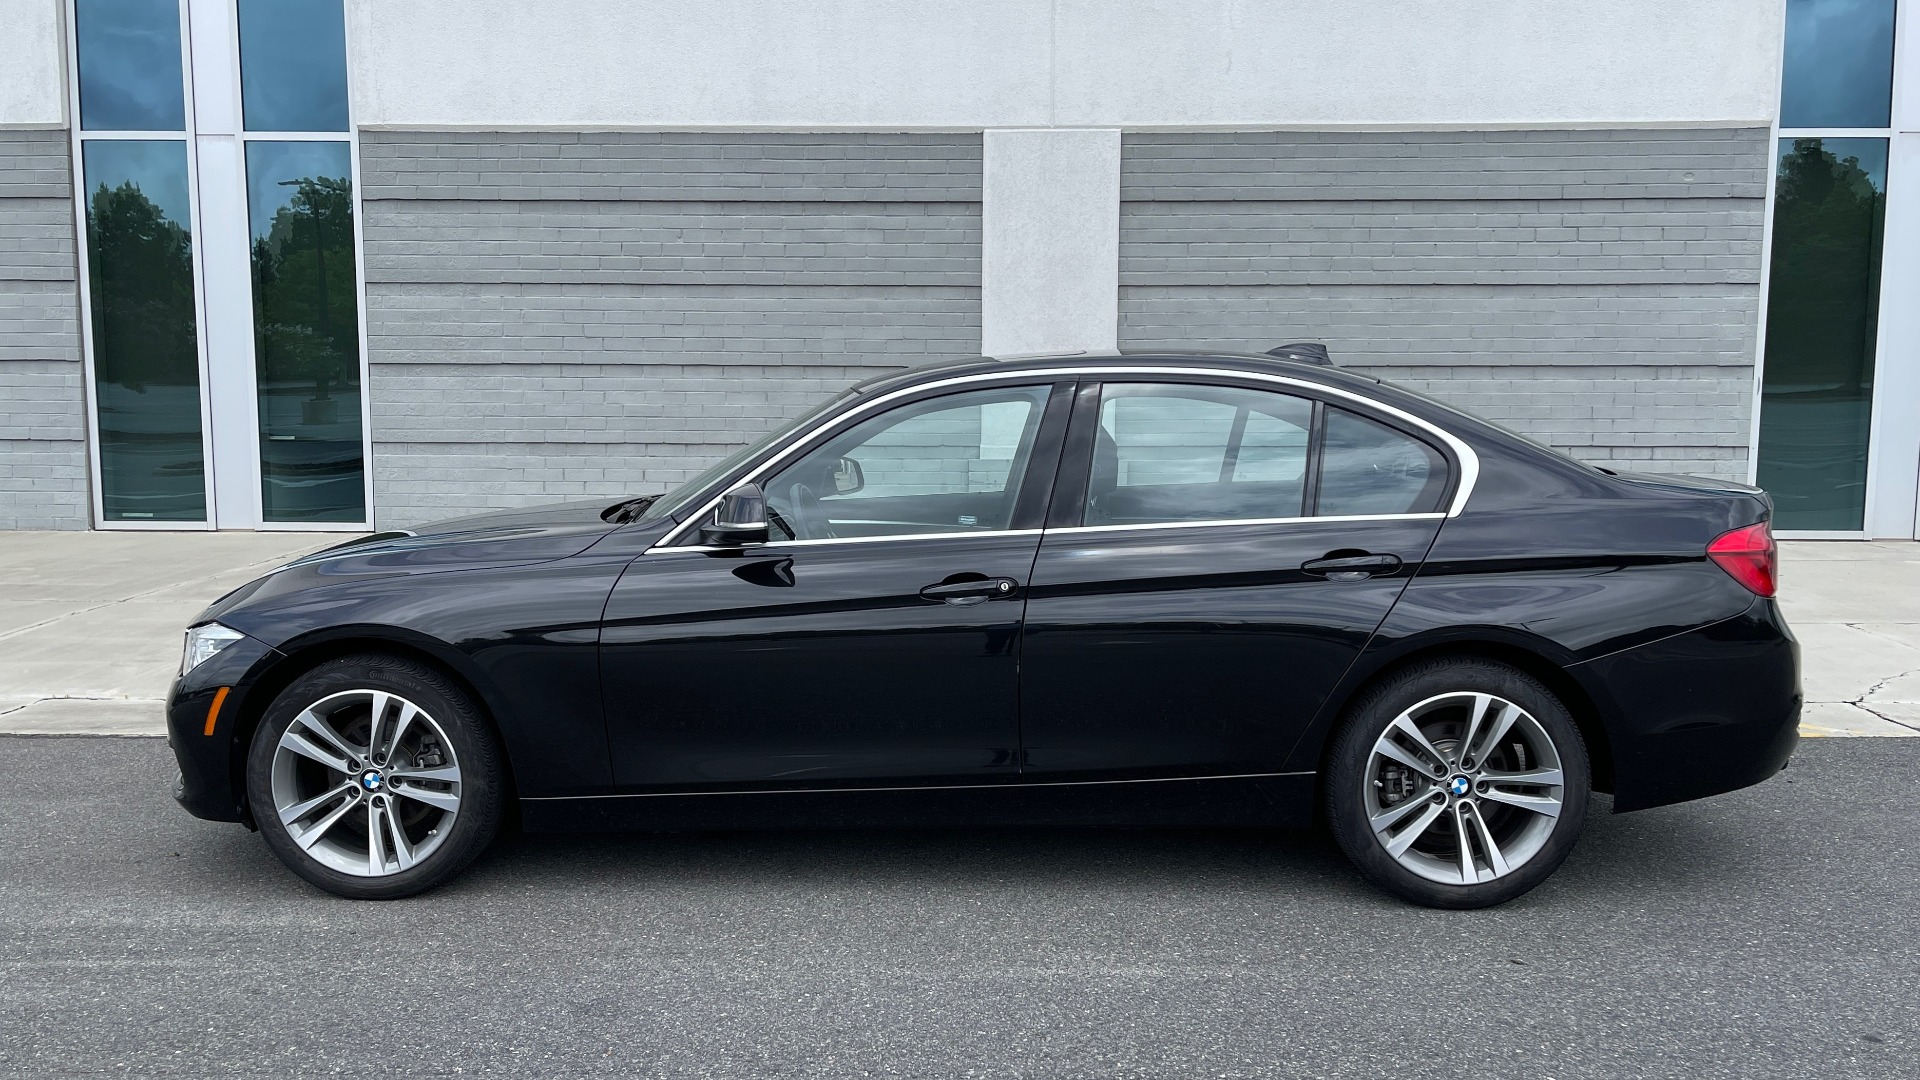 Used 2018 BMW 3 SERIES 330IXDRIVE / NAV / CONV PKG / ABSD / SUNROOF / REARVIEW for sale $29,599 at Formula Imports in Charlotte NC 28227 4